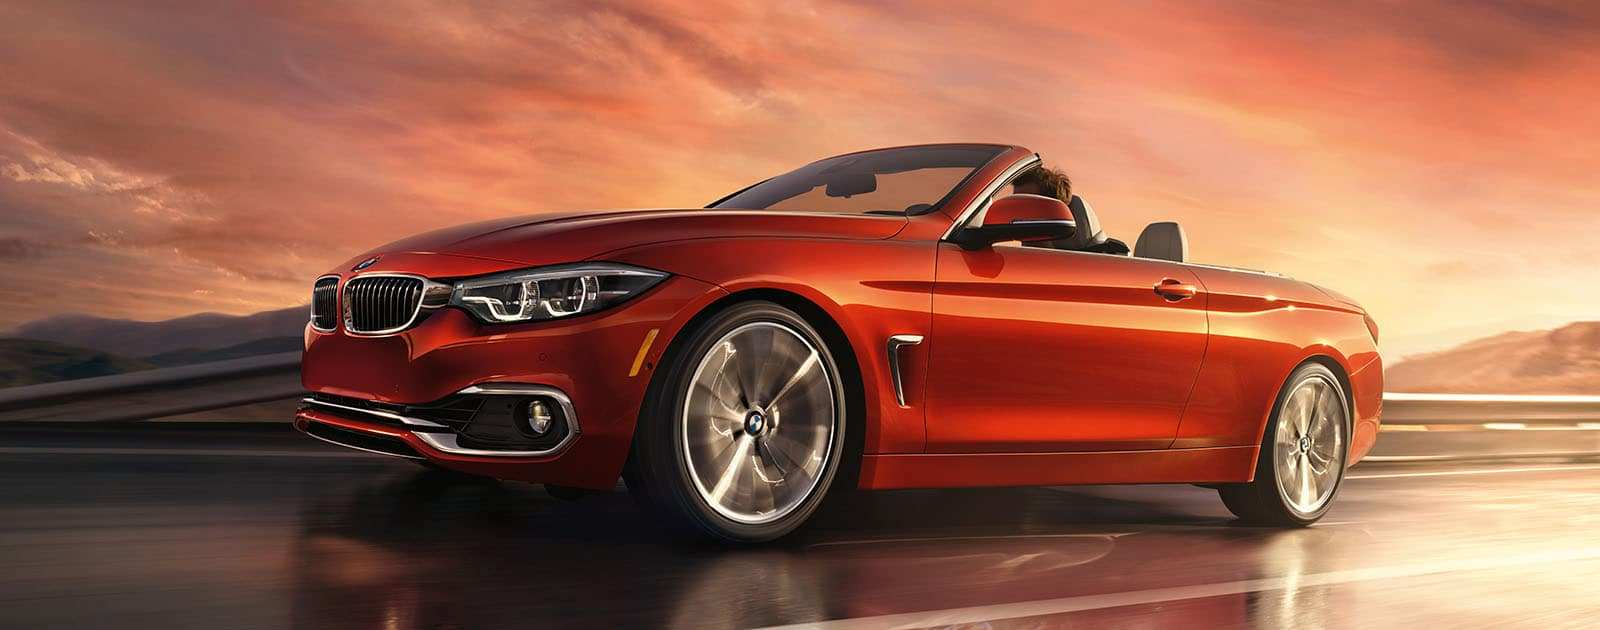 48 Concept of 2019 Bmw 428I Style by 2019 Bmw 428I